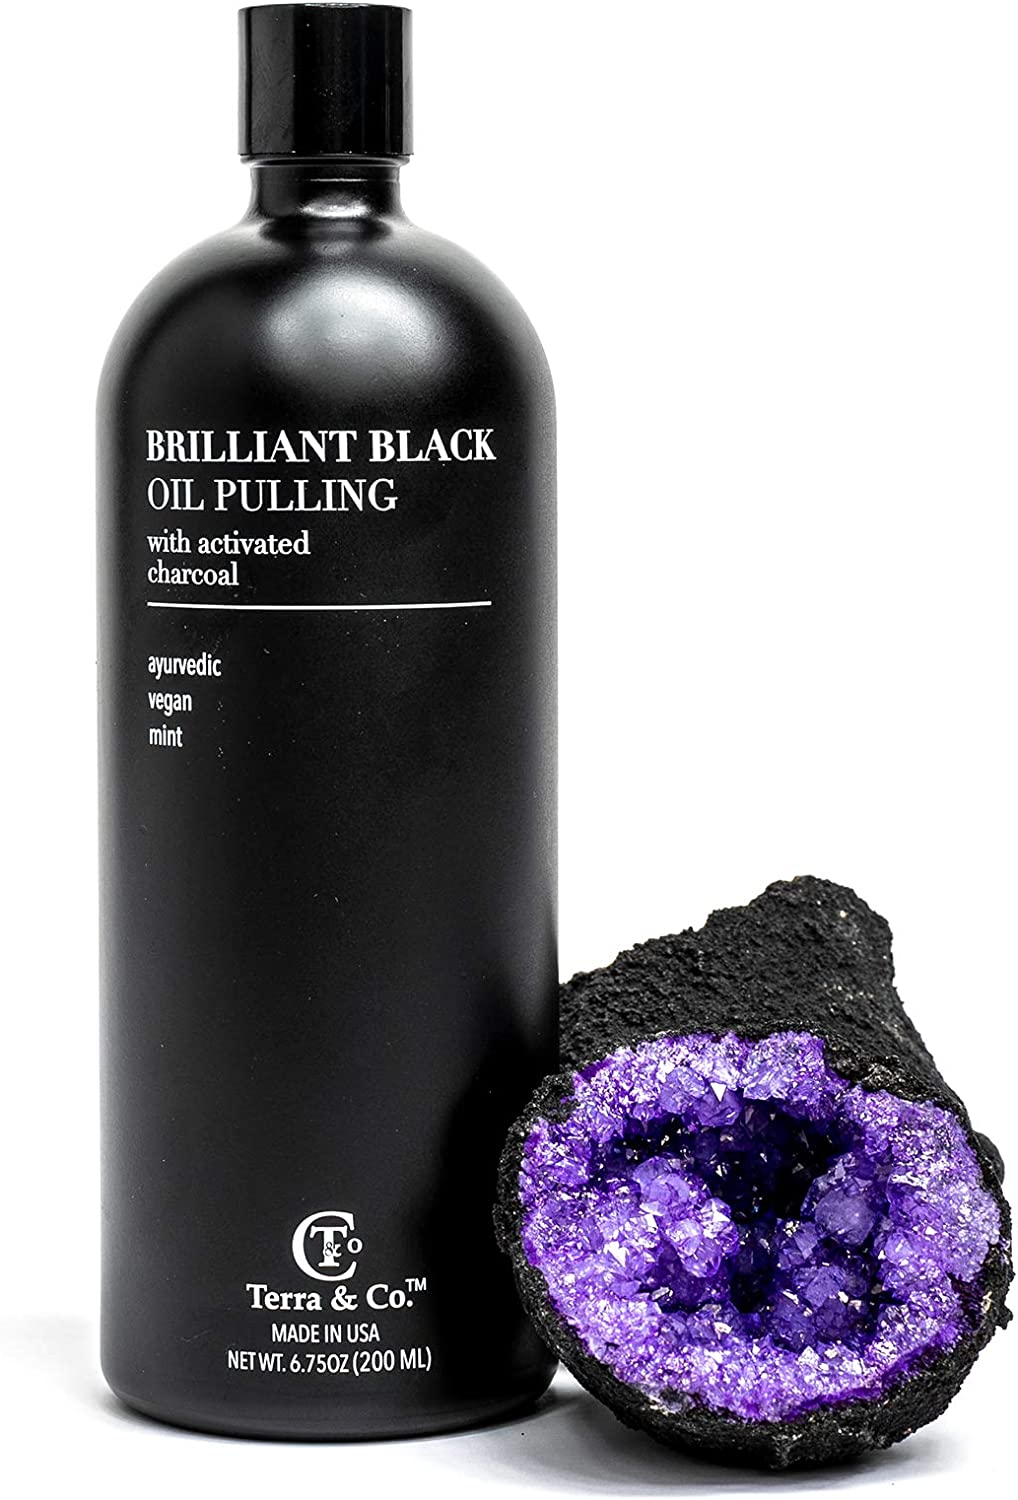 Brilliant Black Oil Pulling, Natural Ayurvedic Blend of Activated Charcoal and Coconut Oil, Oil Pulling Mouthwash Rinse with Peppermint Essential Oil - Terra and Co.